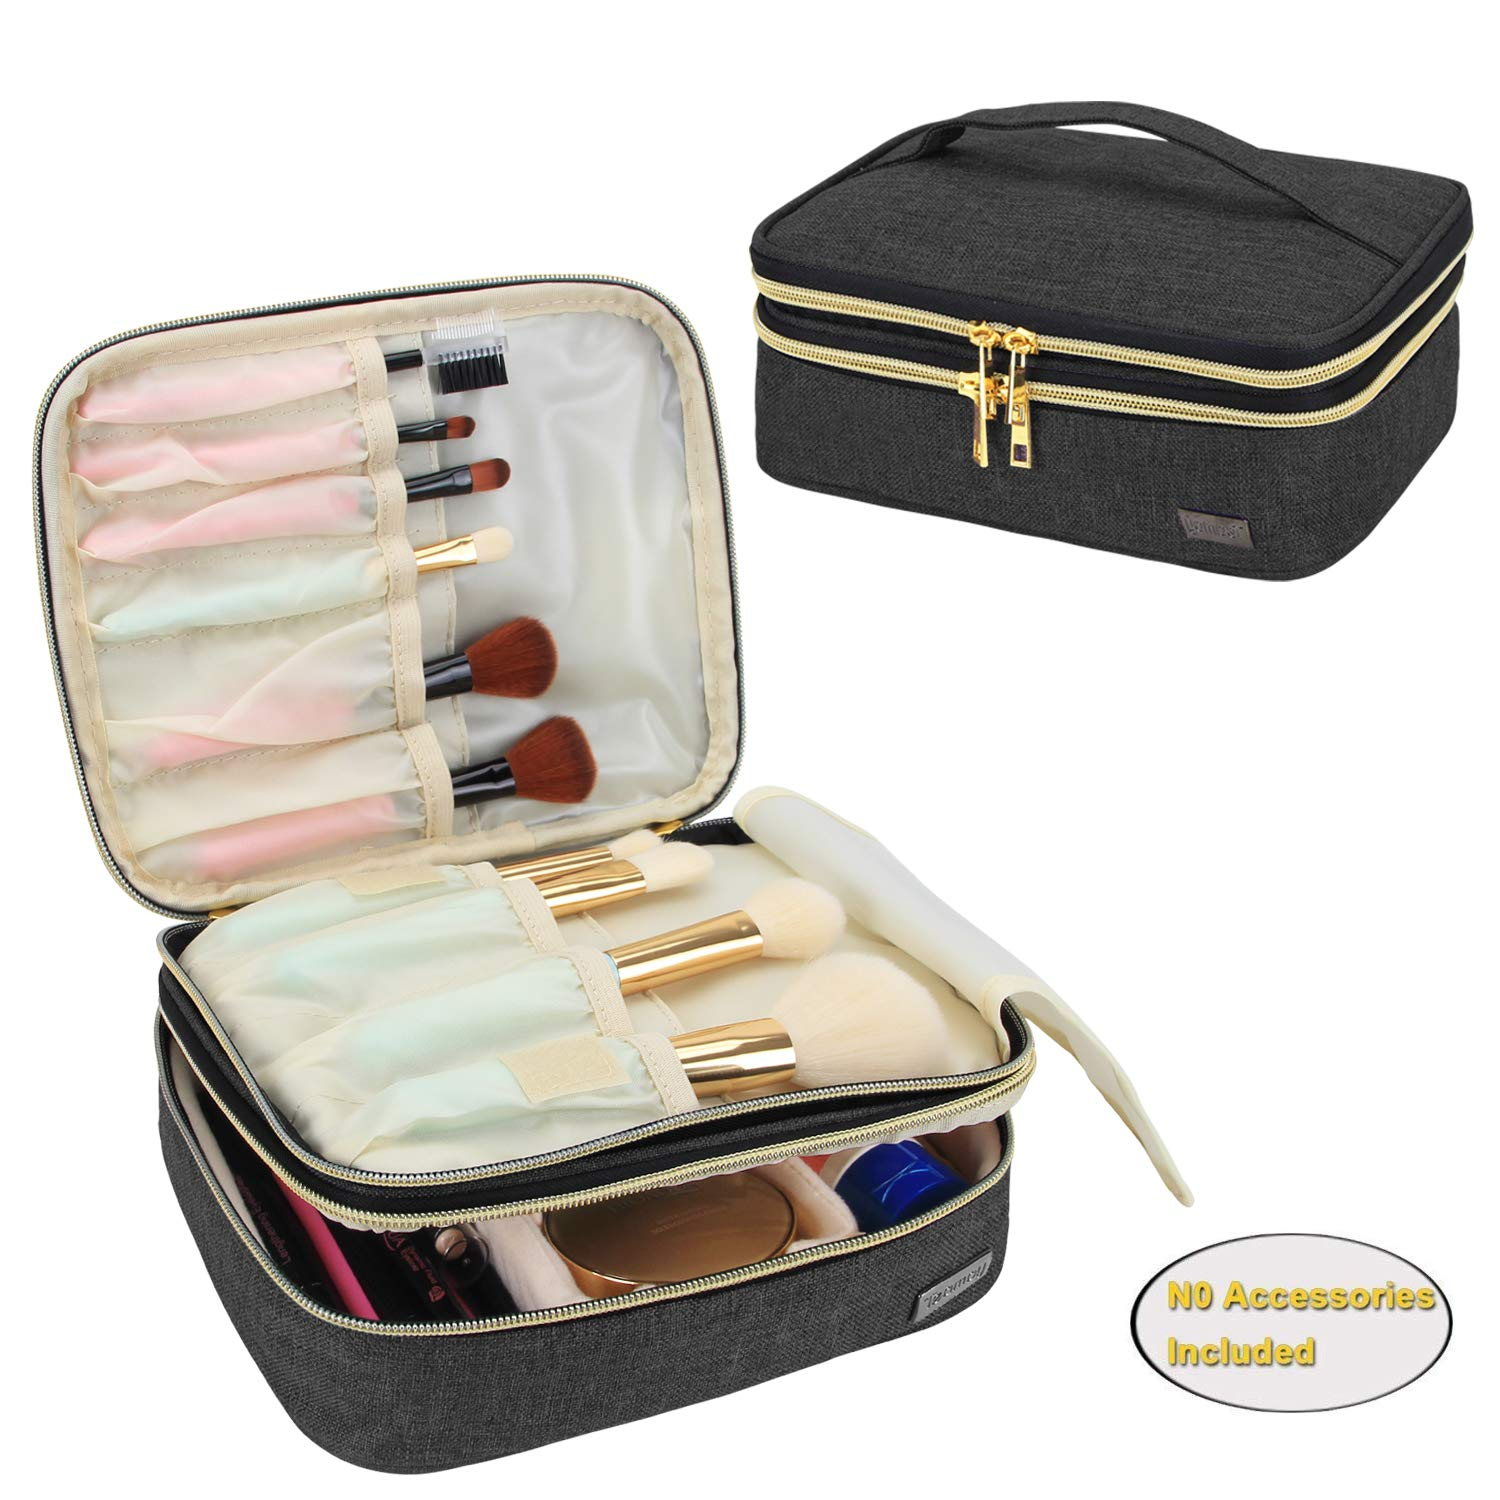 Teamoy Travel Makeup Brushes Case(up to 8.8'' Brushes), Professional Makeup Train Organizer Bag with Handle for Makeup Brushes and Beauty Essentials-Medium, Black(New Version)